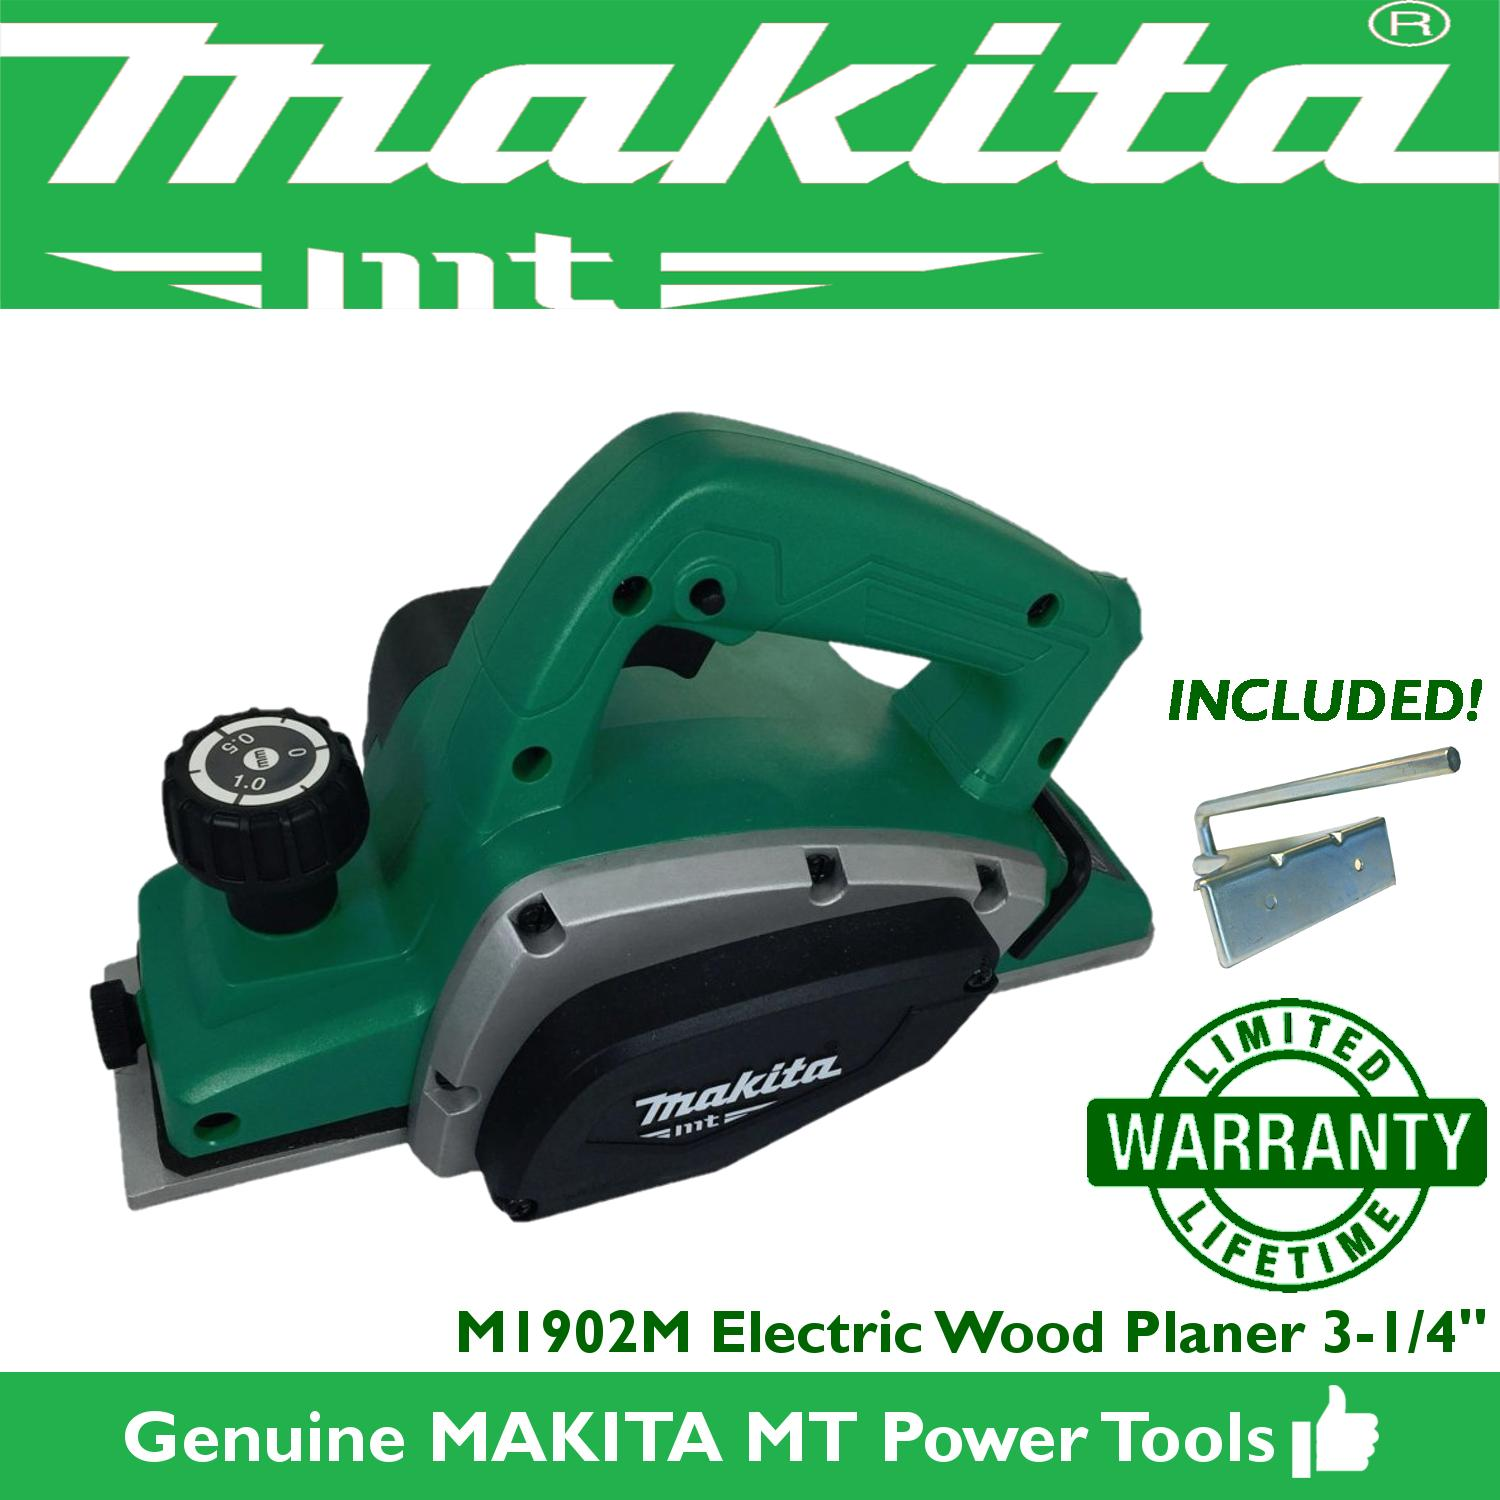 Planers For Sale Jointer Prices Brands Review In Philippines What Does An Electric Planer Do Makita Mt M1902m Wood 3 1 4